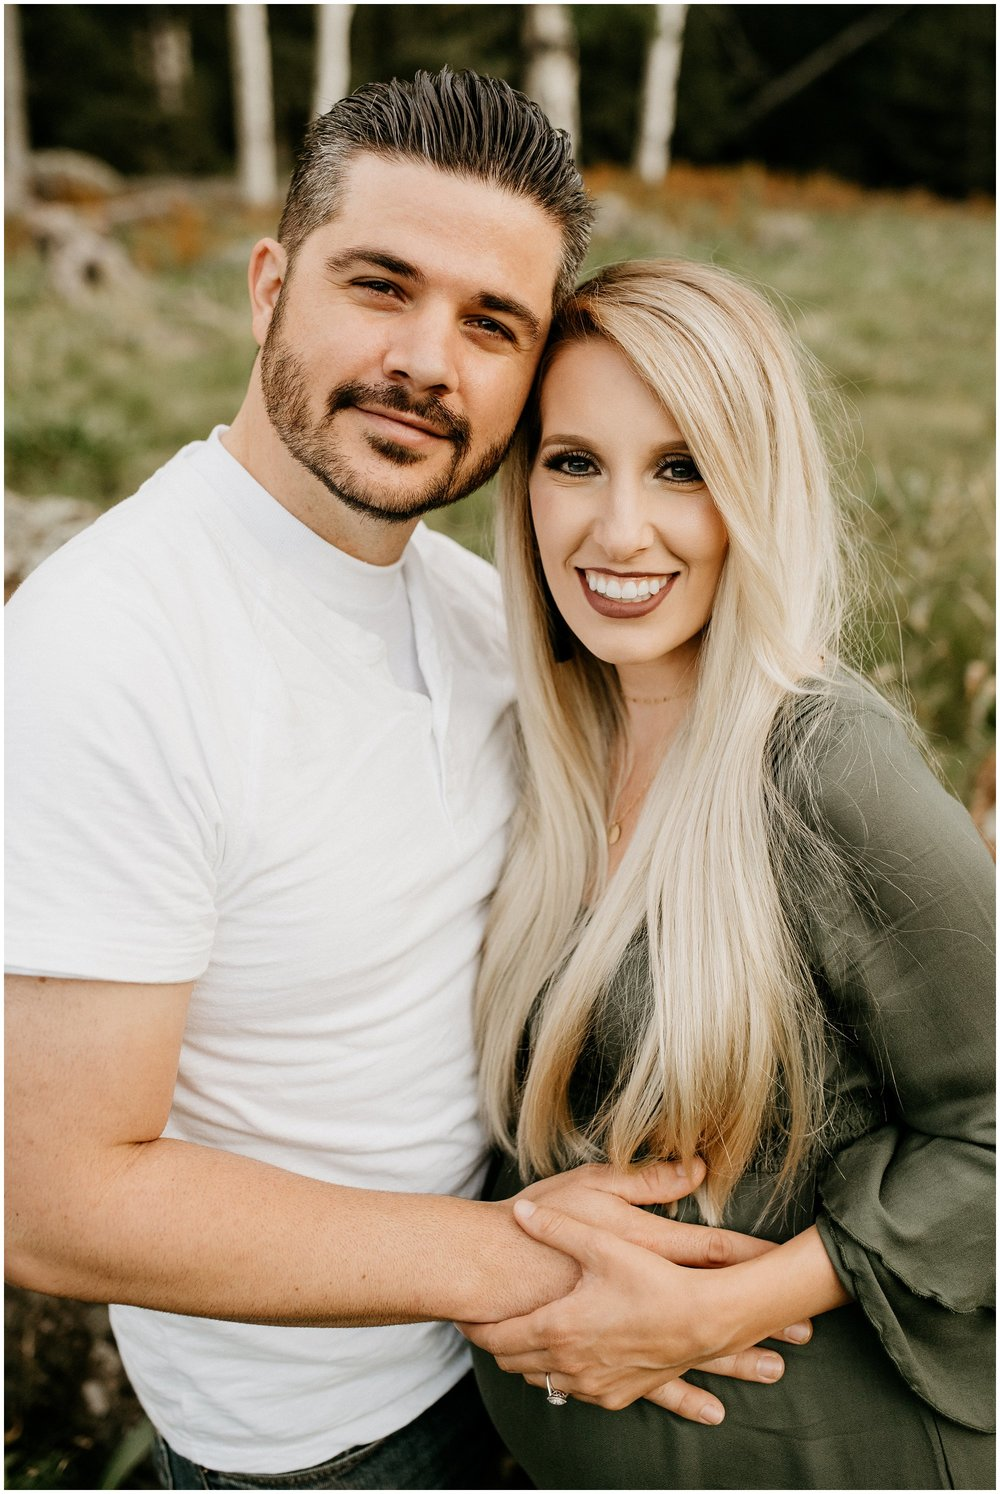 Flagstaff Aspen Tree Portrait Session - Gabby + Gary - Ashtyn Nicole Photo_0040.jpg